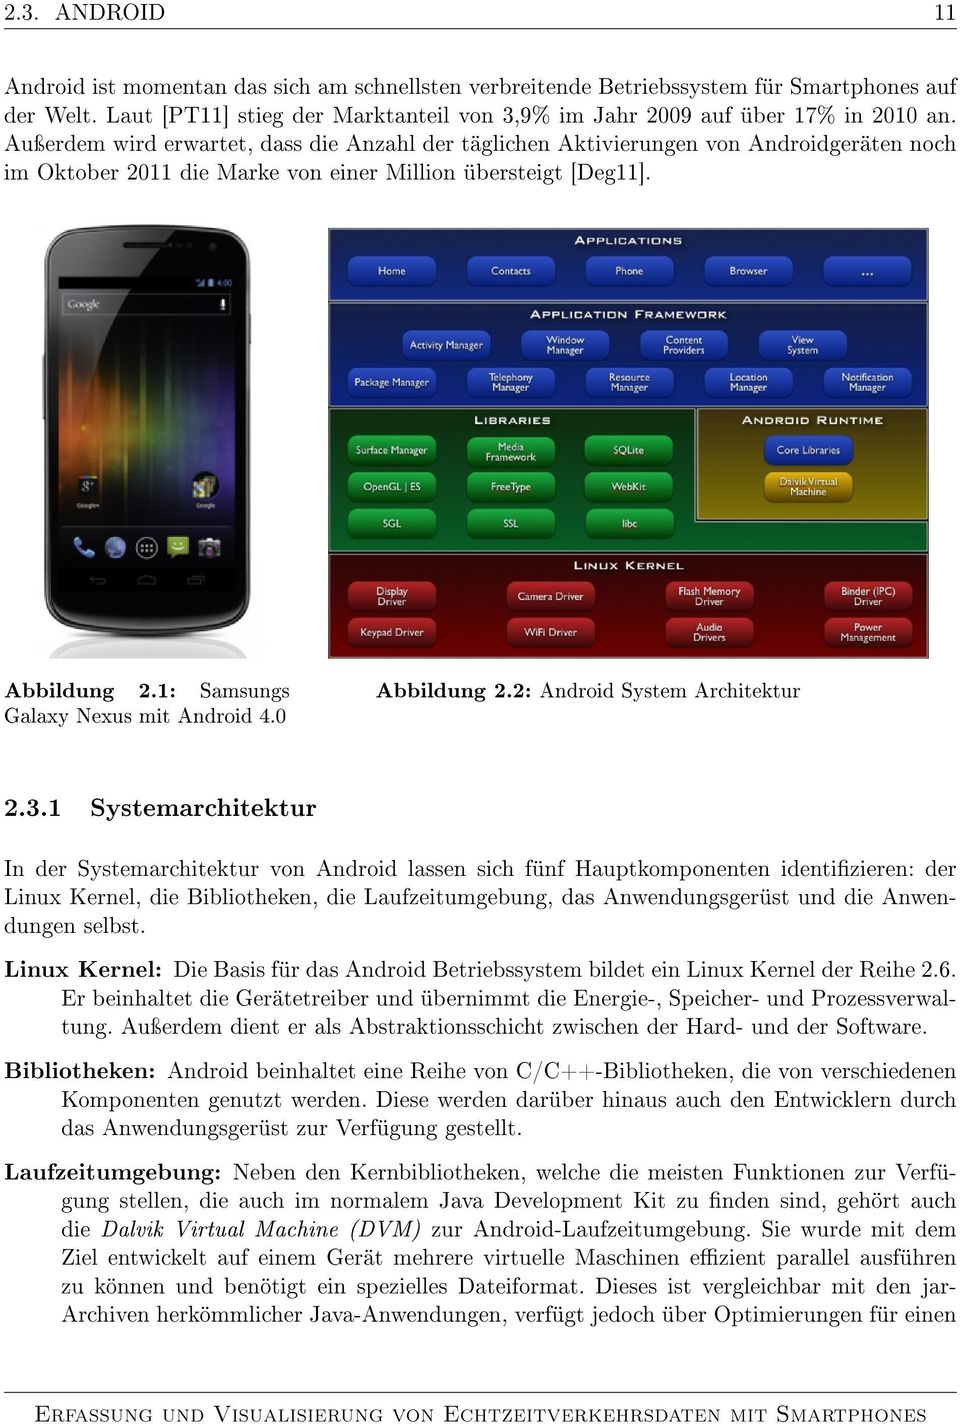 1: Samsungs Galaxy Nexus mit Android 4.0 Abbildung 2.2: Android System Architektur 2.3.